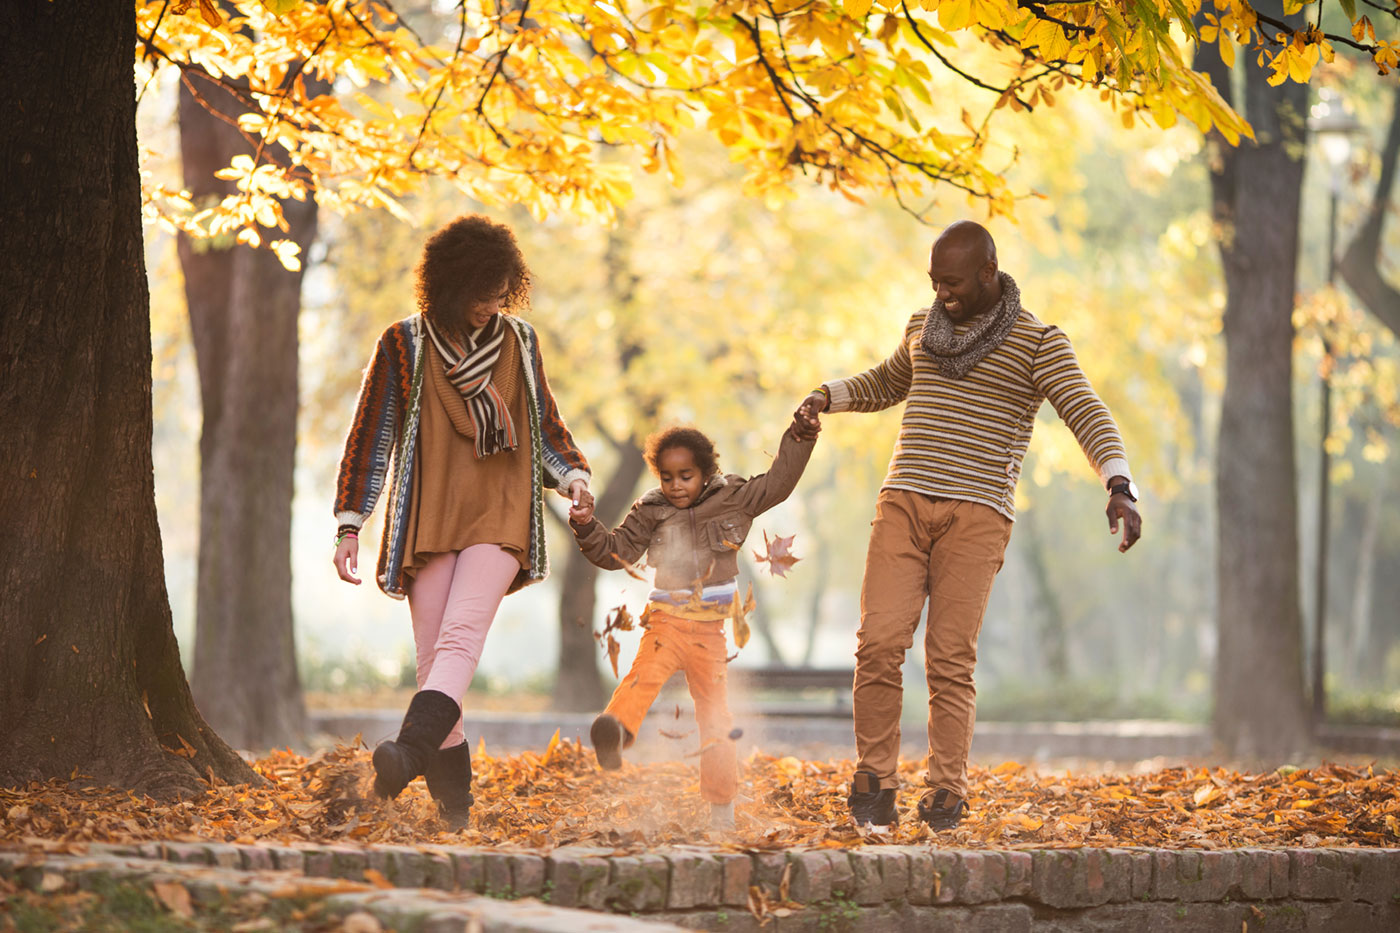 Fun Family Fall Activities That Are Inexpensive or Free